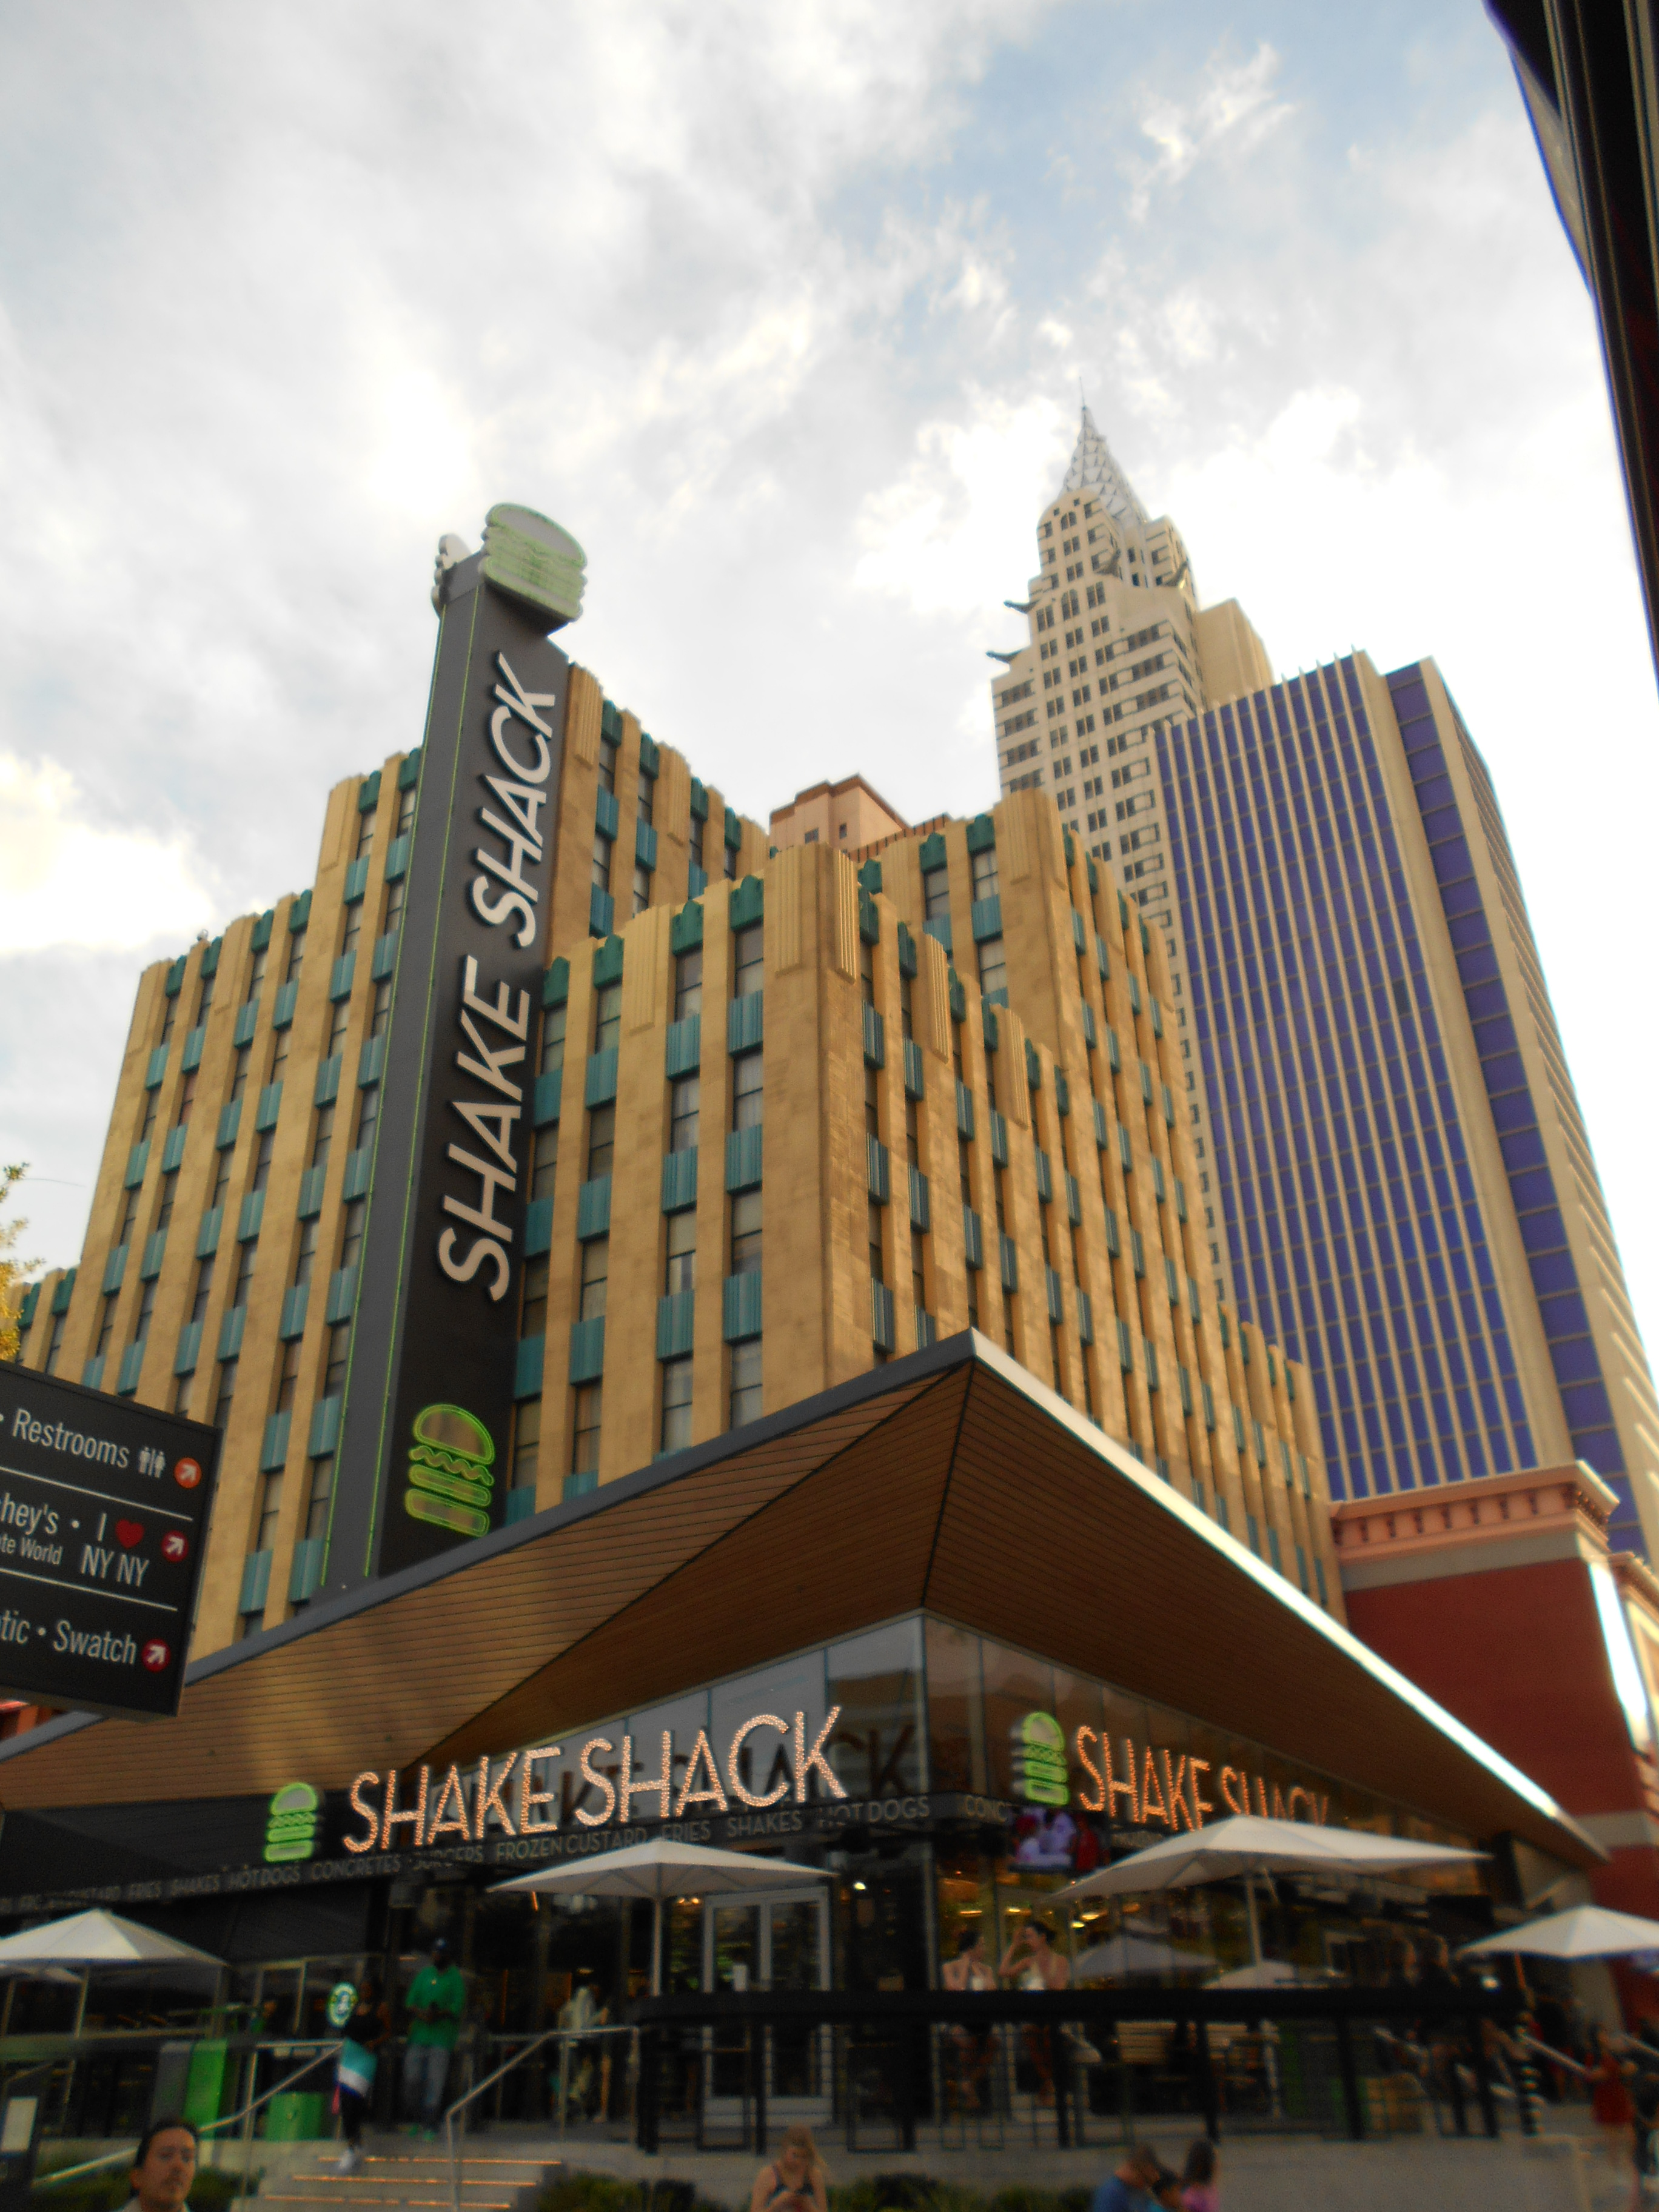 Big restaurant chain Shake Shack qualifies for PPP bailout because each restaurant has less than 500 employees.